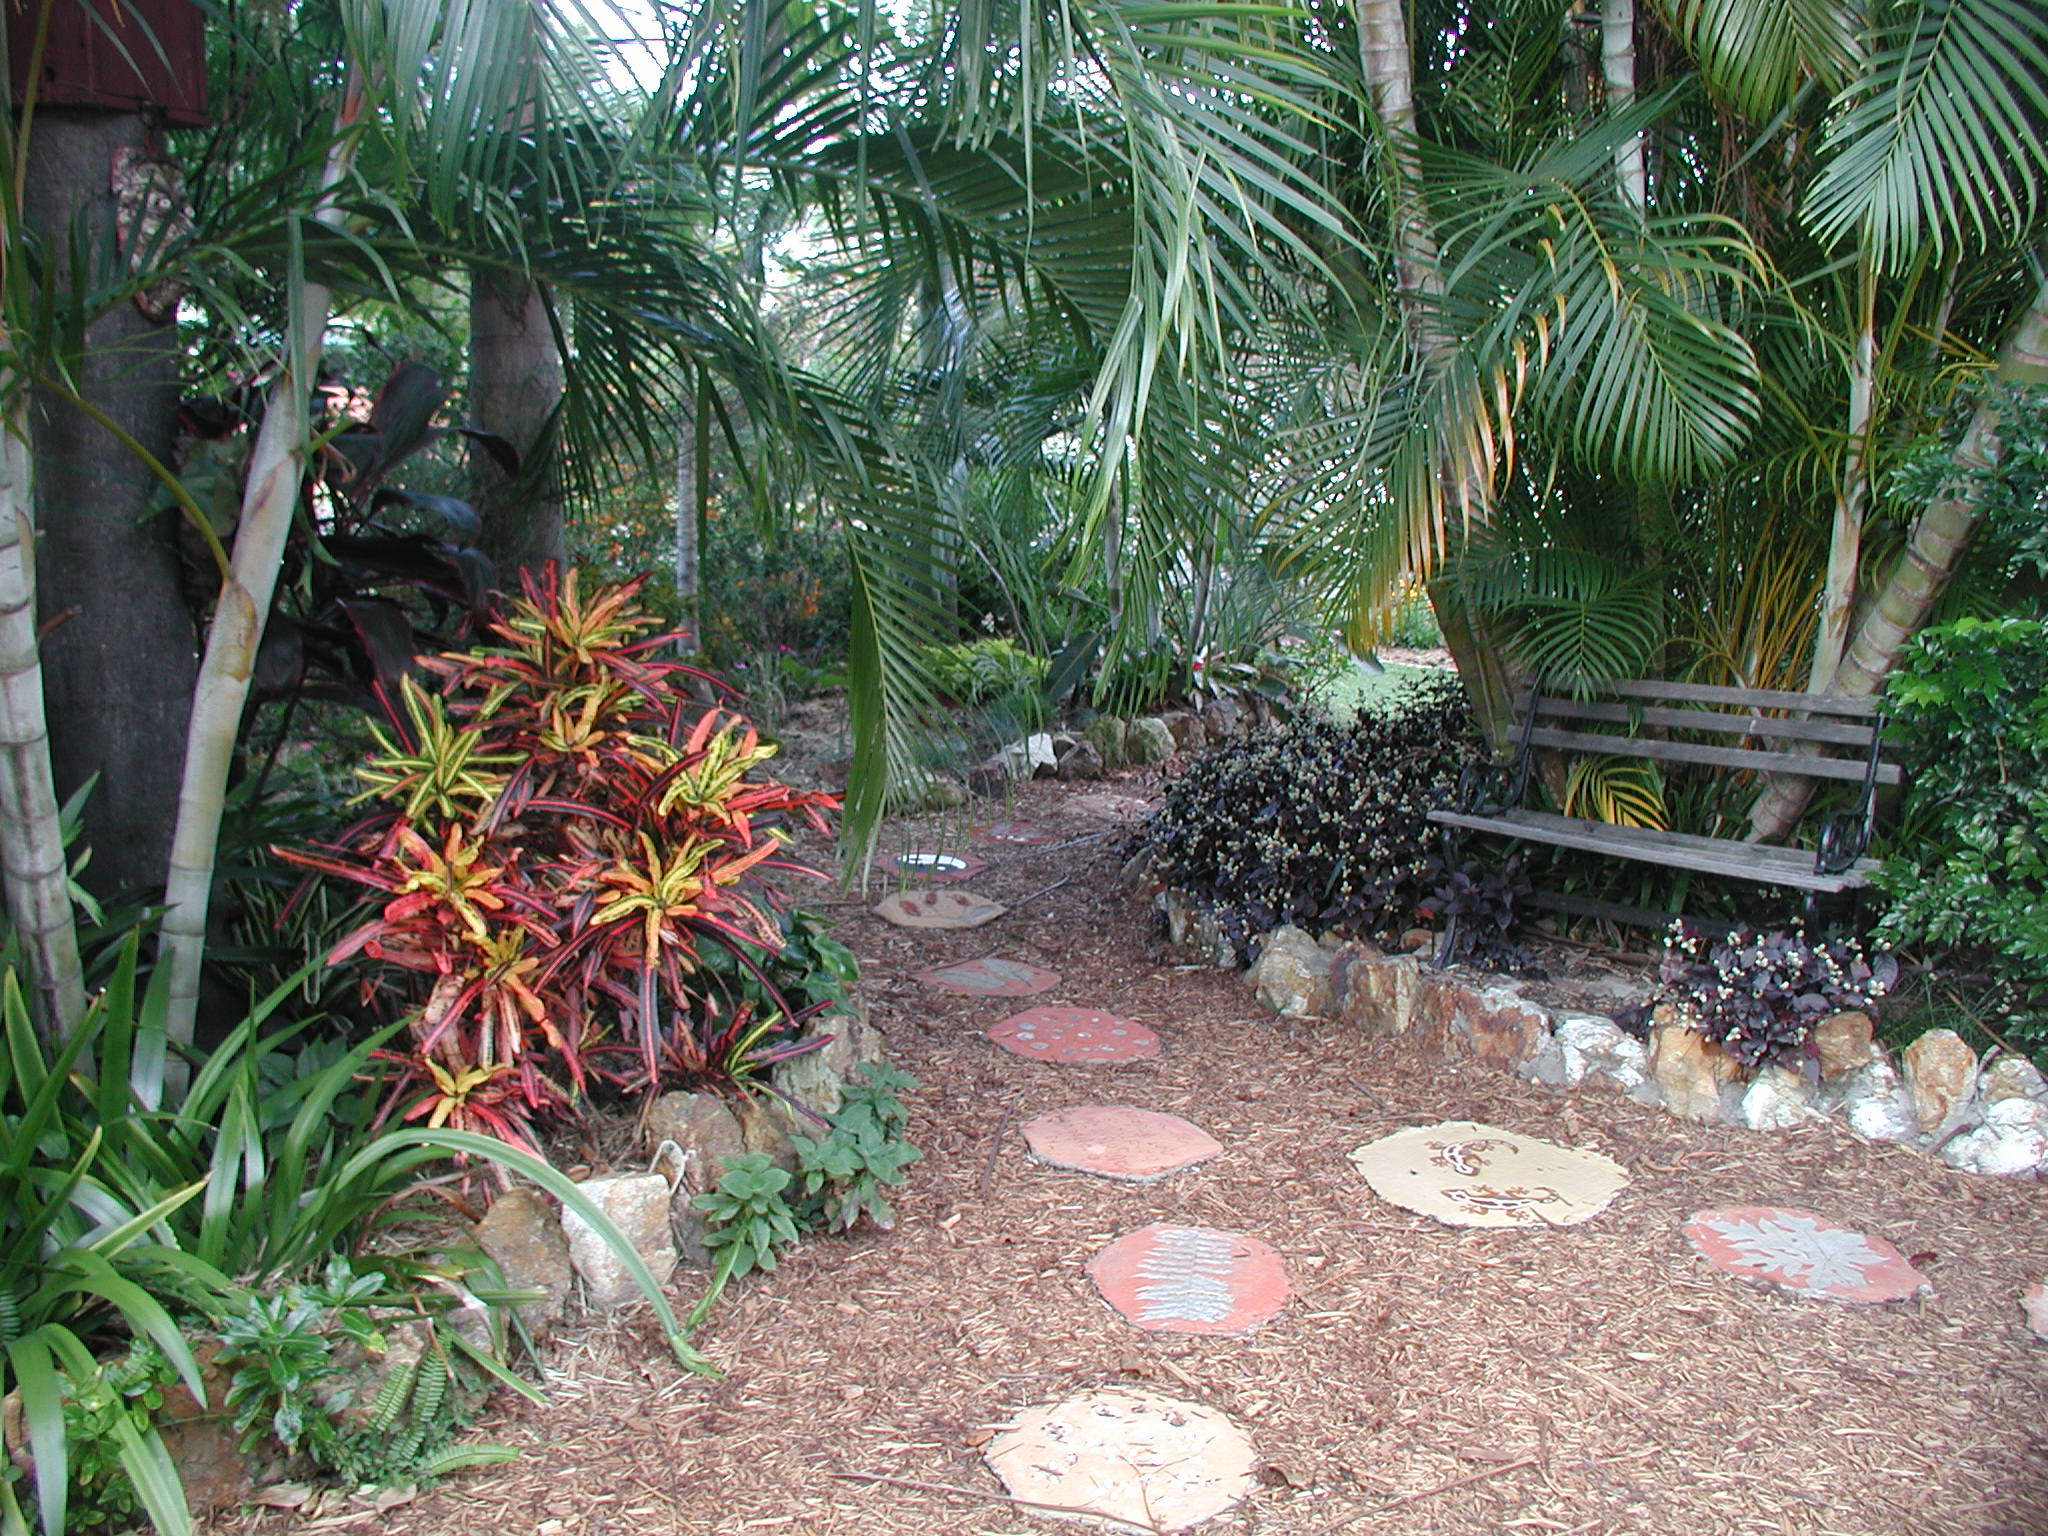 Outdoor Scenic Tropical Garden